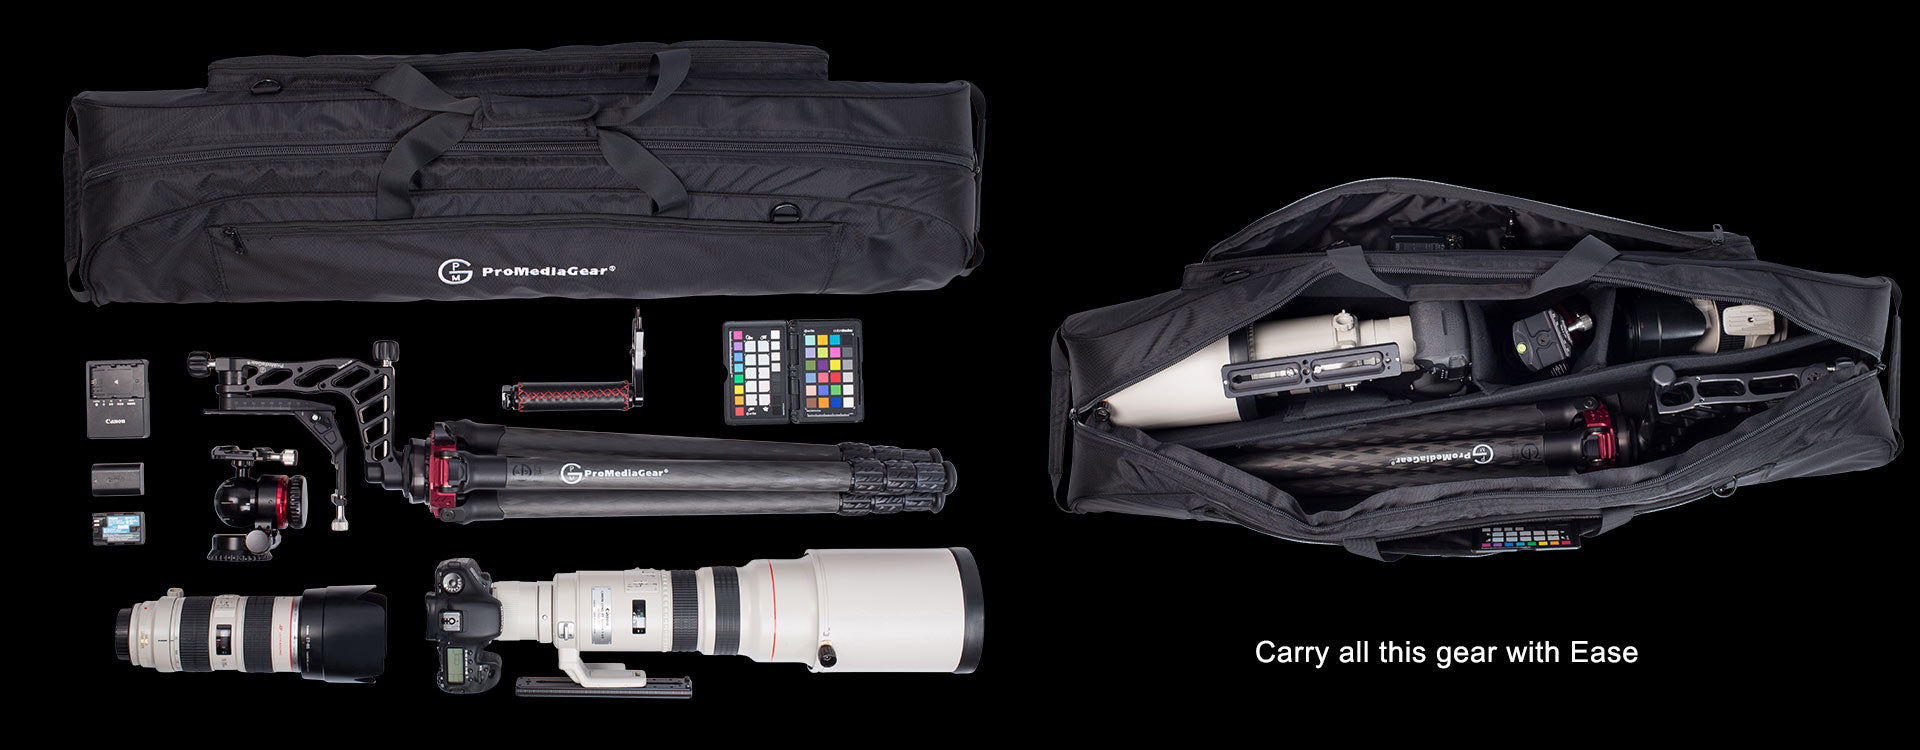 Adjustable Dividers in Bag Let you carry bag with Ball head or Gimbal Attached to Tripod